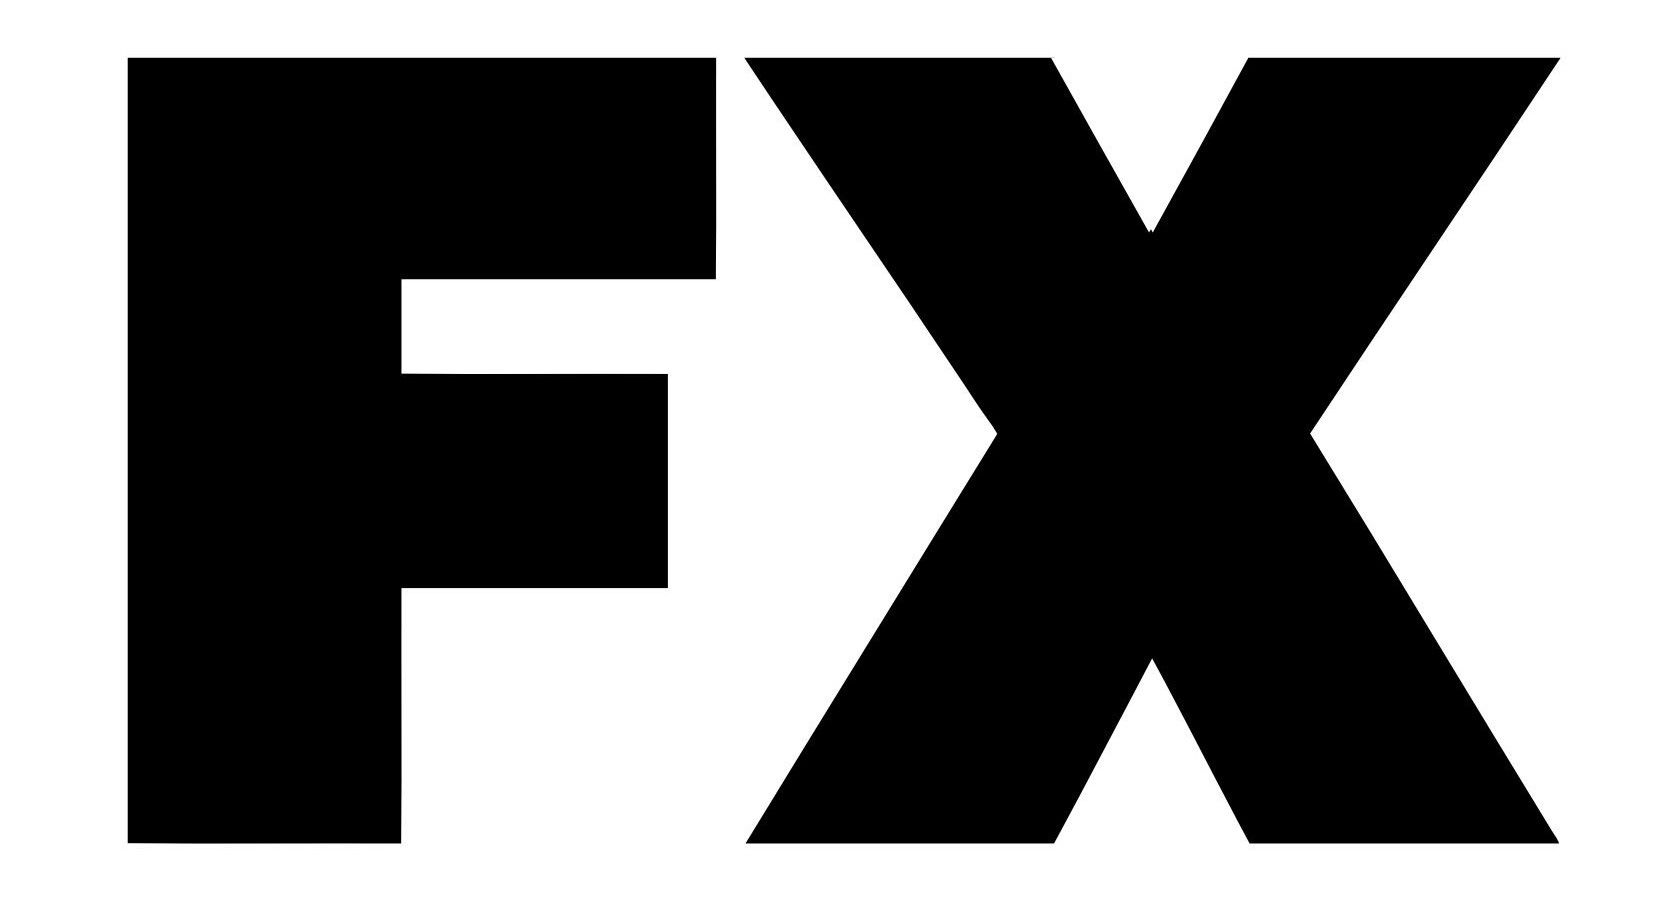 Fx tv channel logo eps pdf tv channel and networks logos fx tv channel logo eps pdf buycottarizona